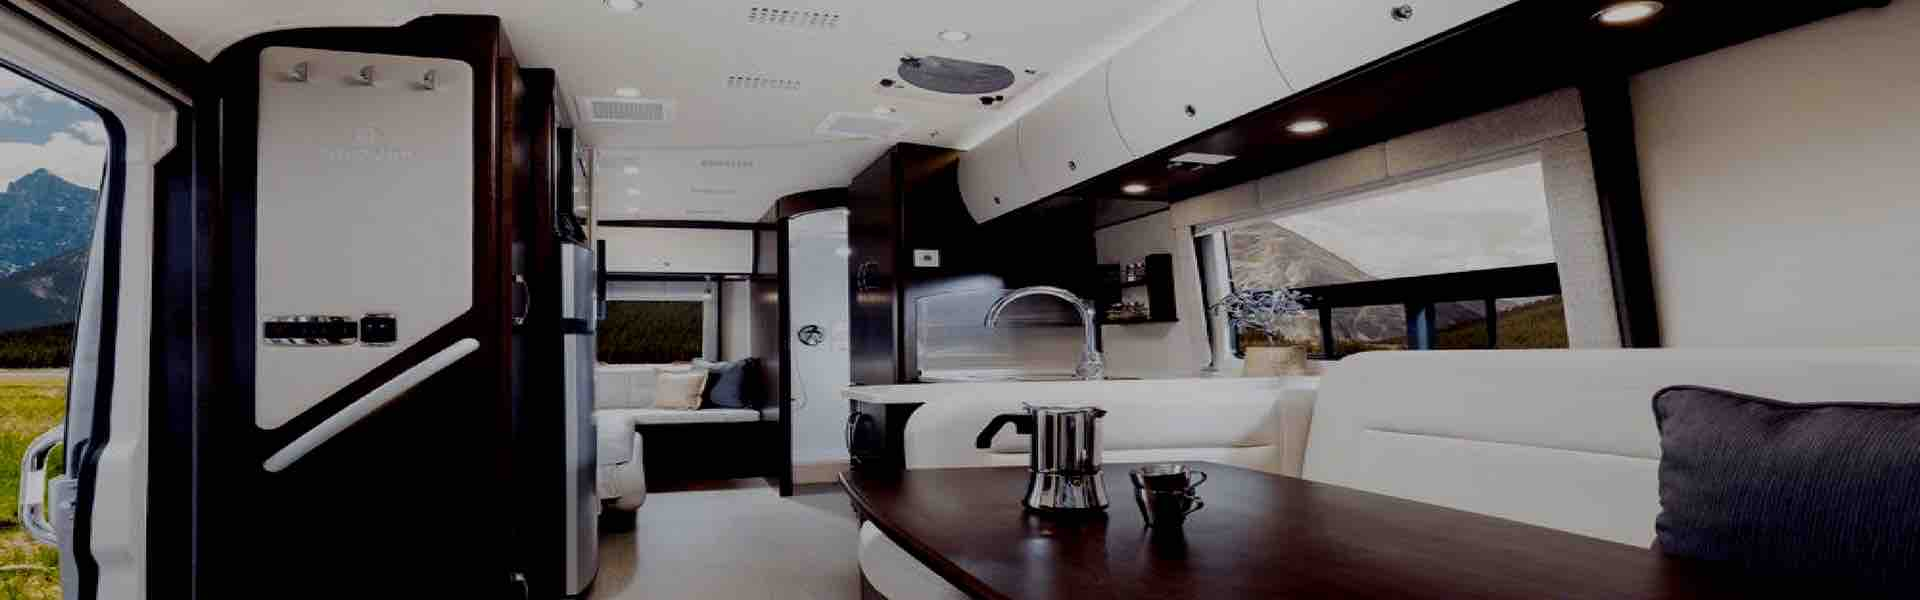 Luxury RV For Rent Anywhere In California With Free Pickup